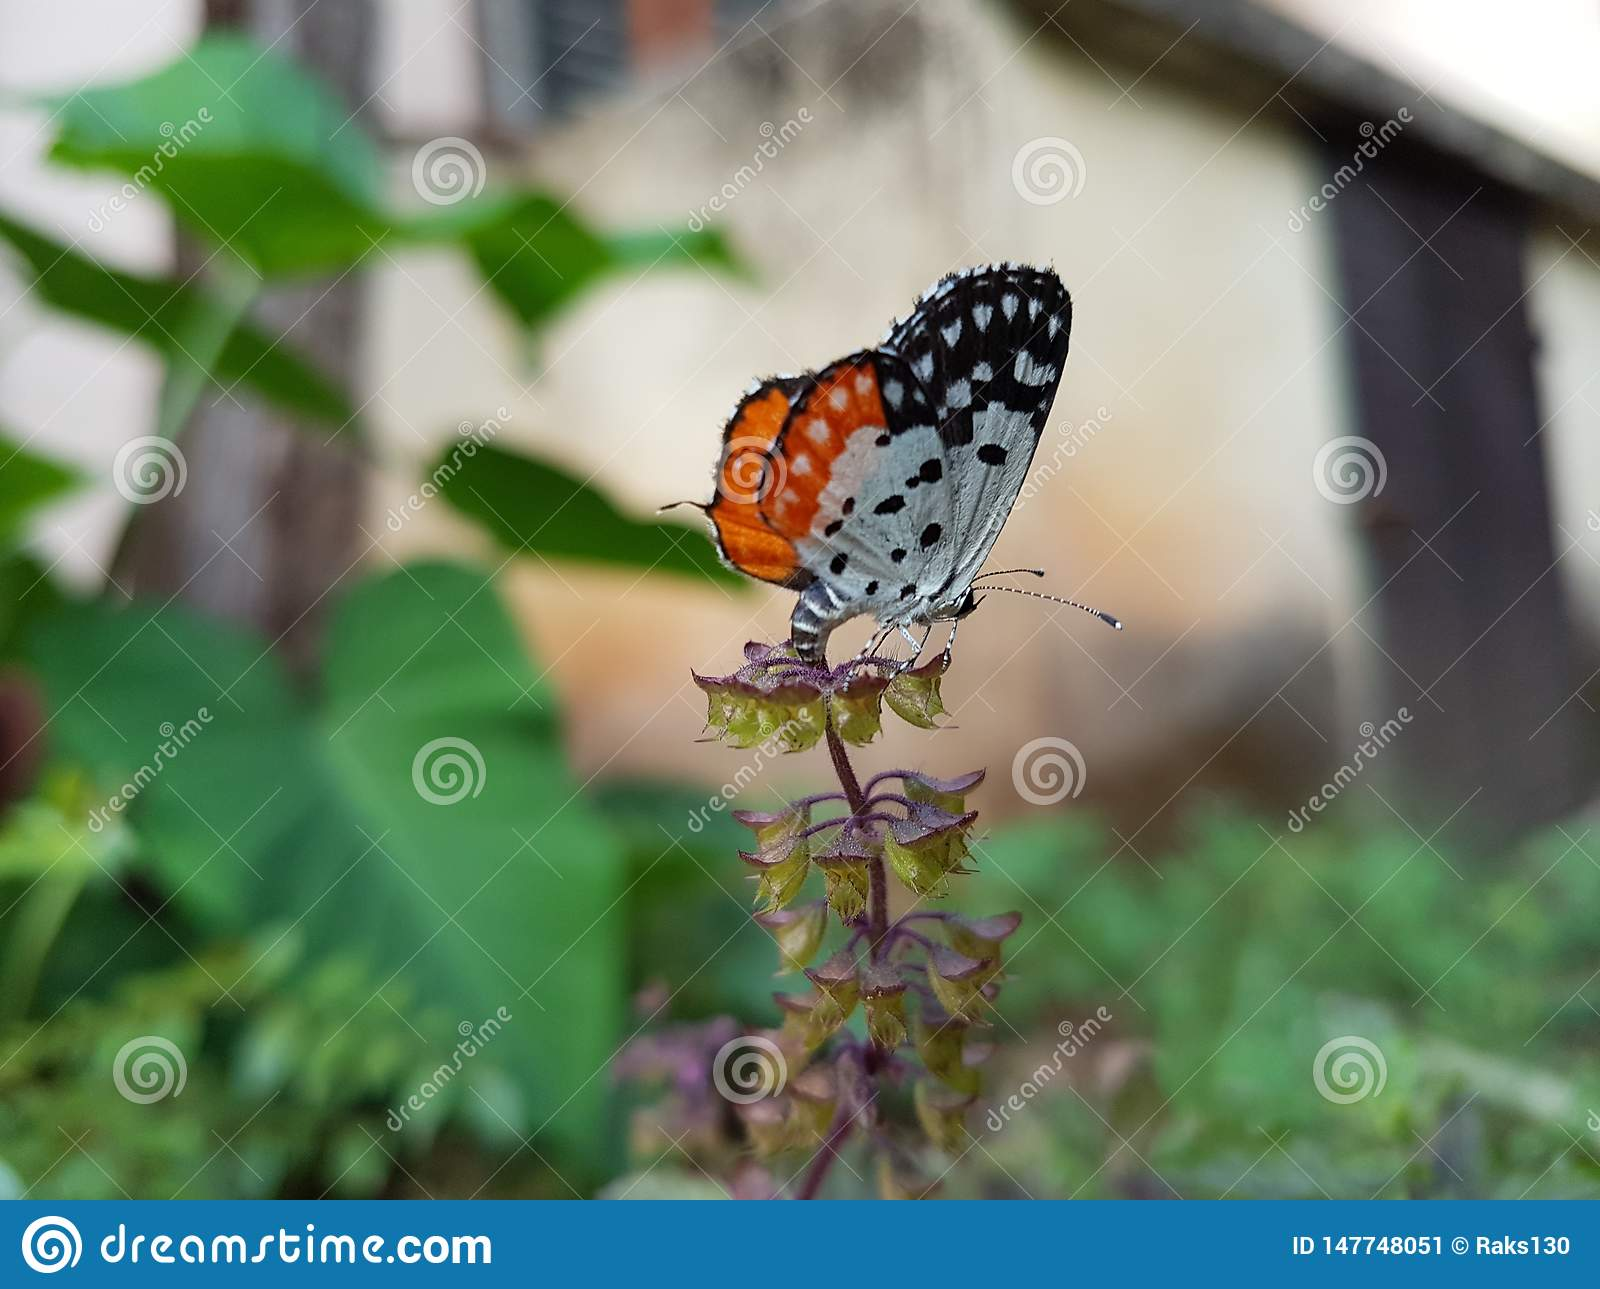 Butterfly sitting on a plant in a garden